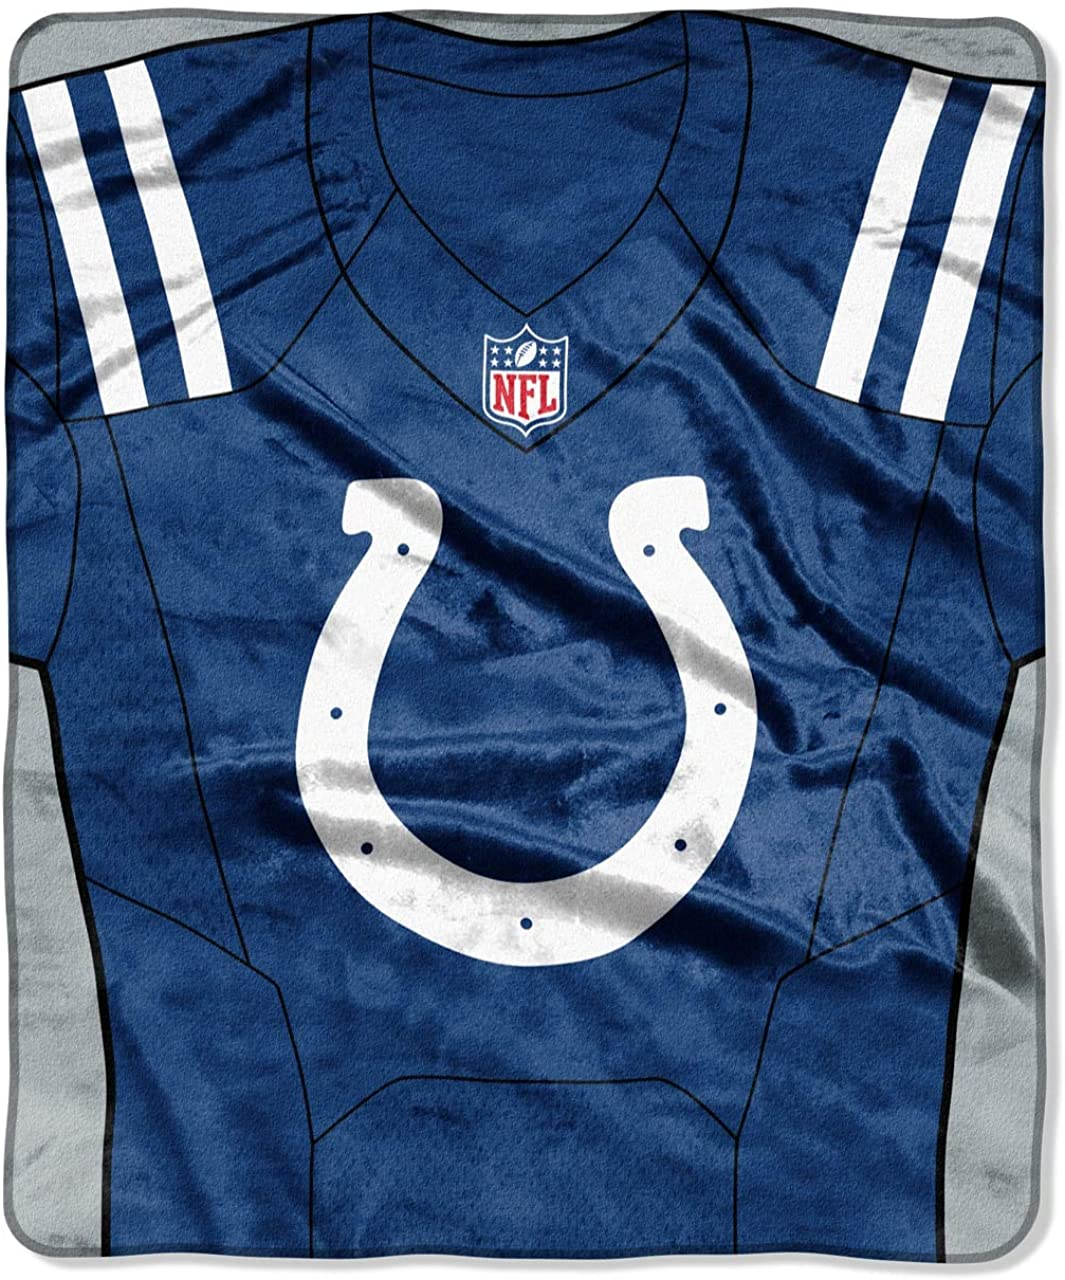 Northwest NFL Indianapolis Colts Royal Plus Raschel Throw, One Size, Multicolor